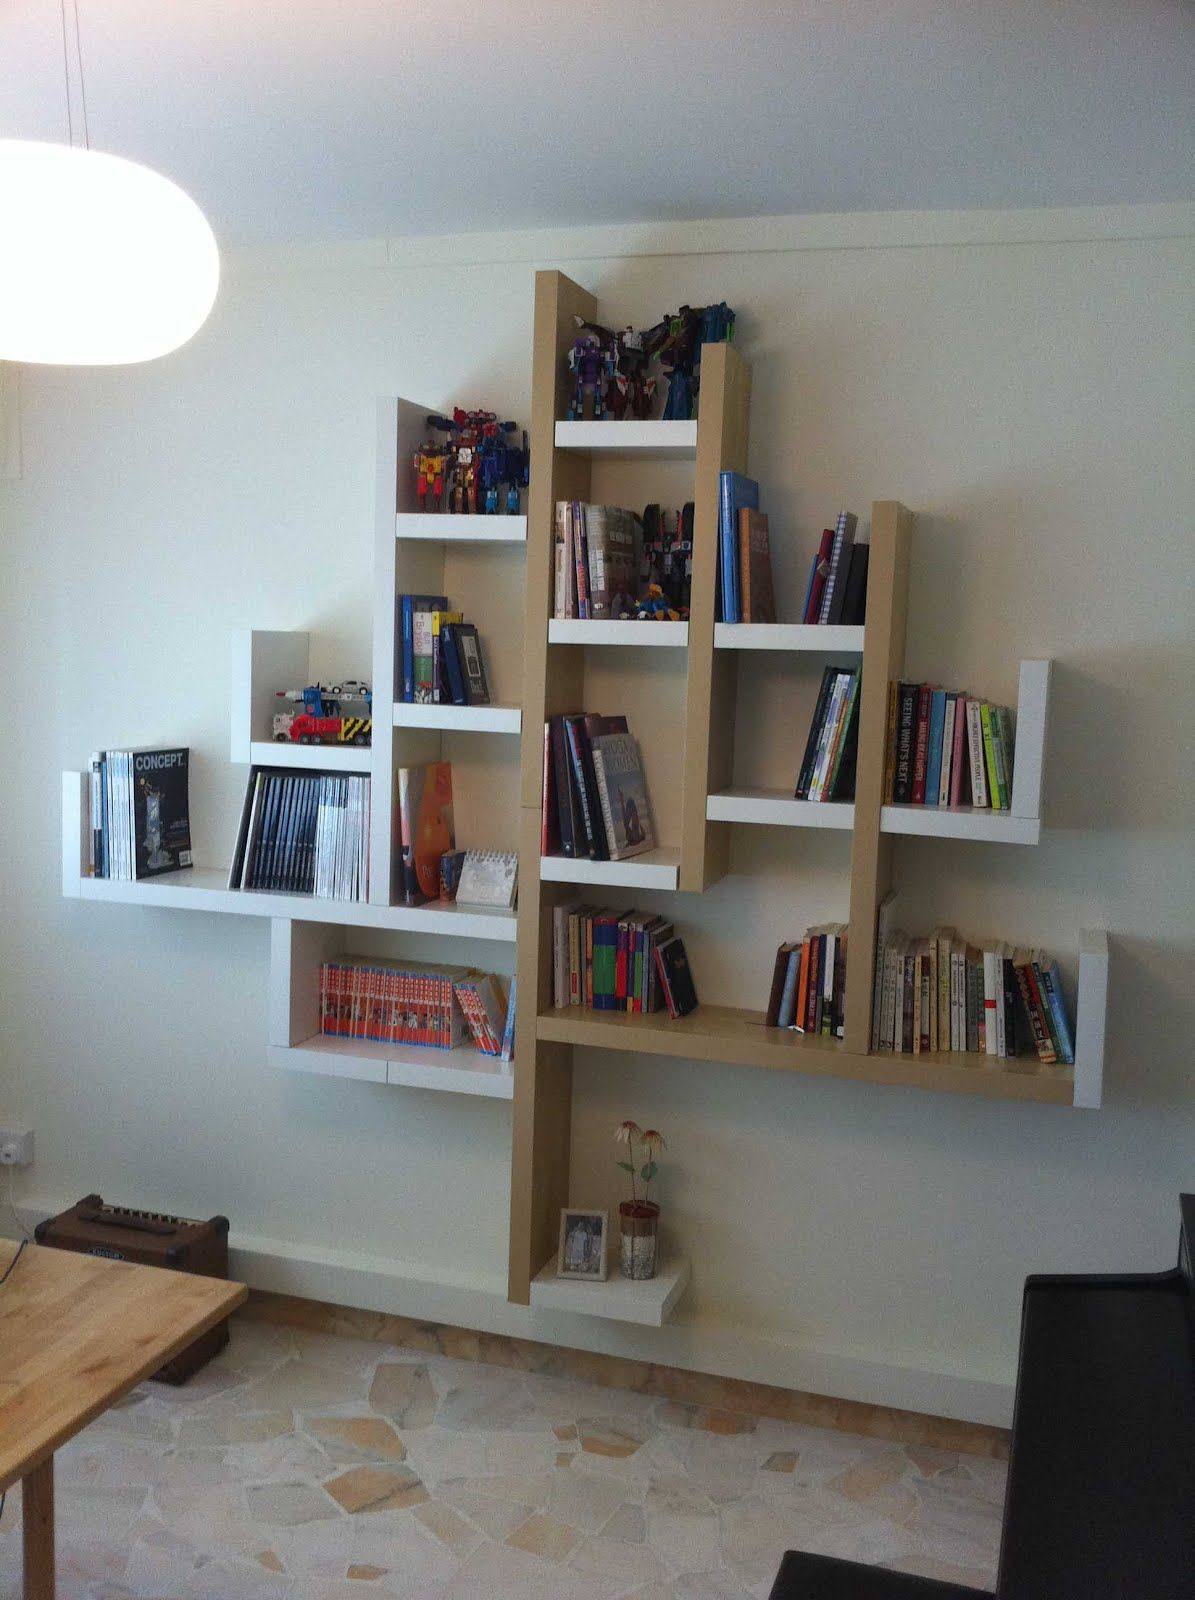 Ikea Lack Shelf Hack Lack Bookshelf Id Love To Have This In The Playroom For Books